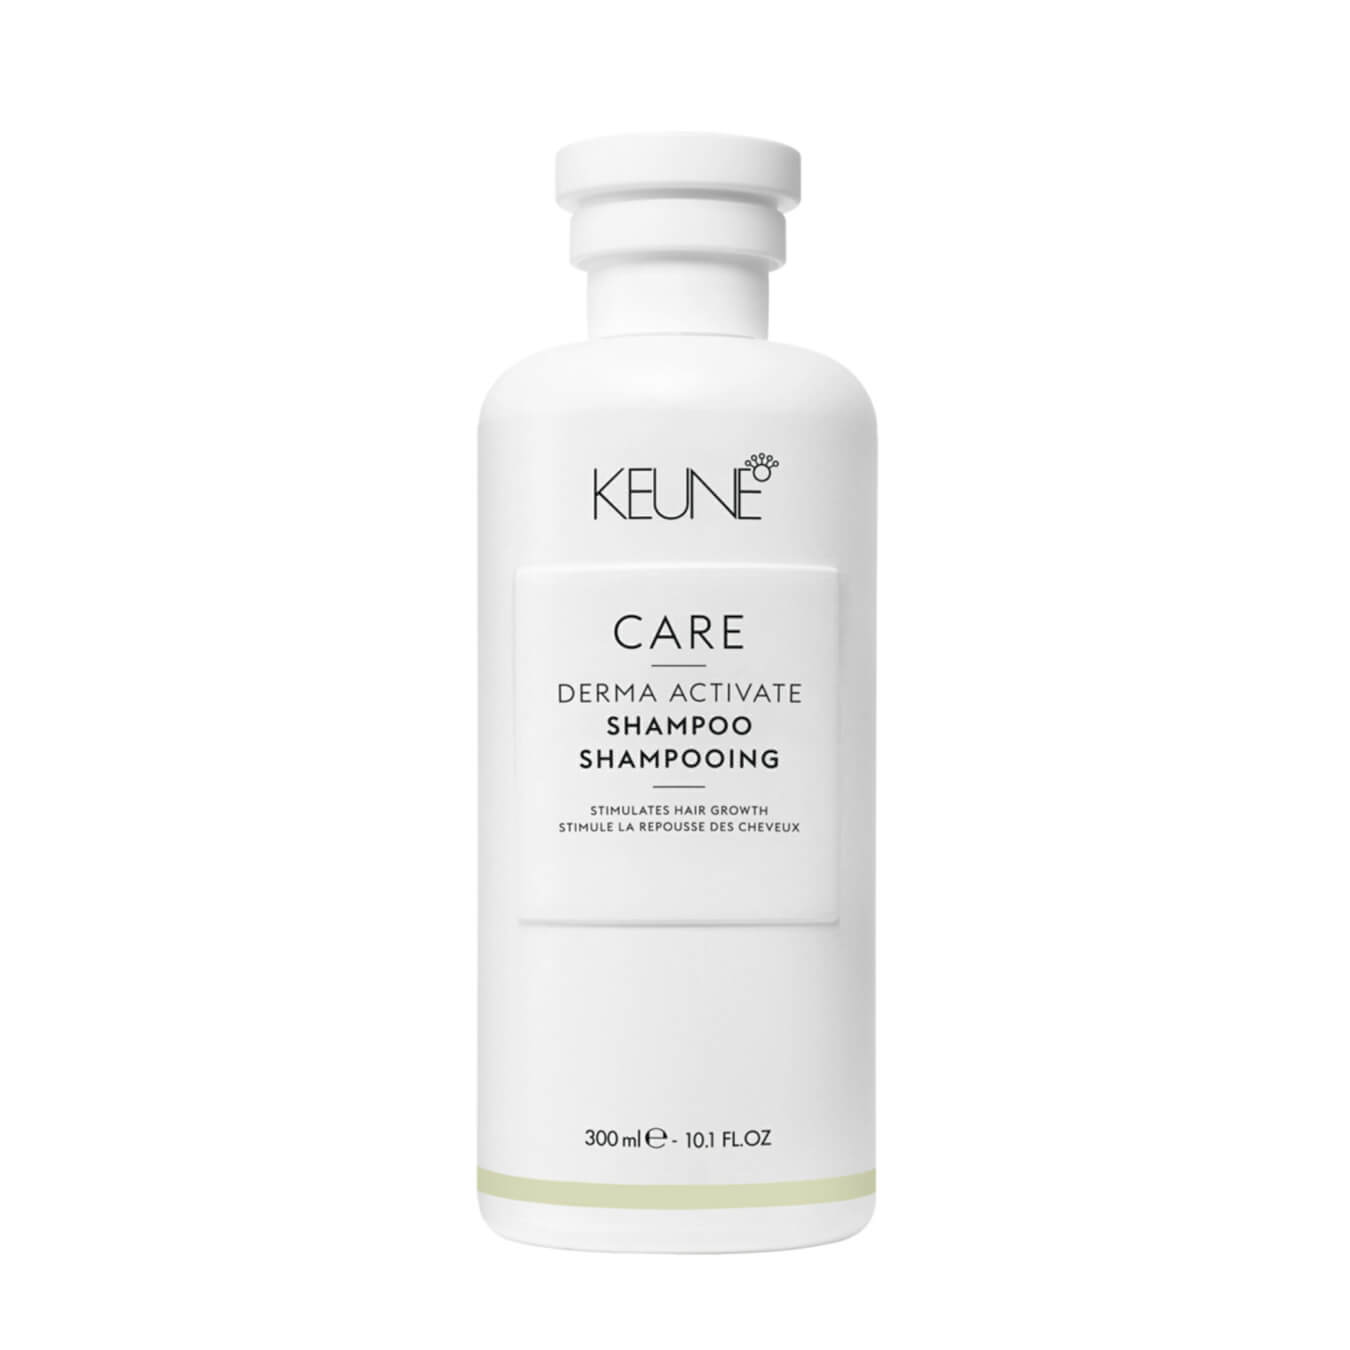 Koop Keune Care Derma Activate Shampoo 300ml